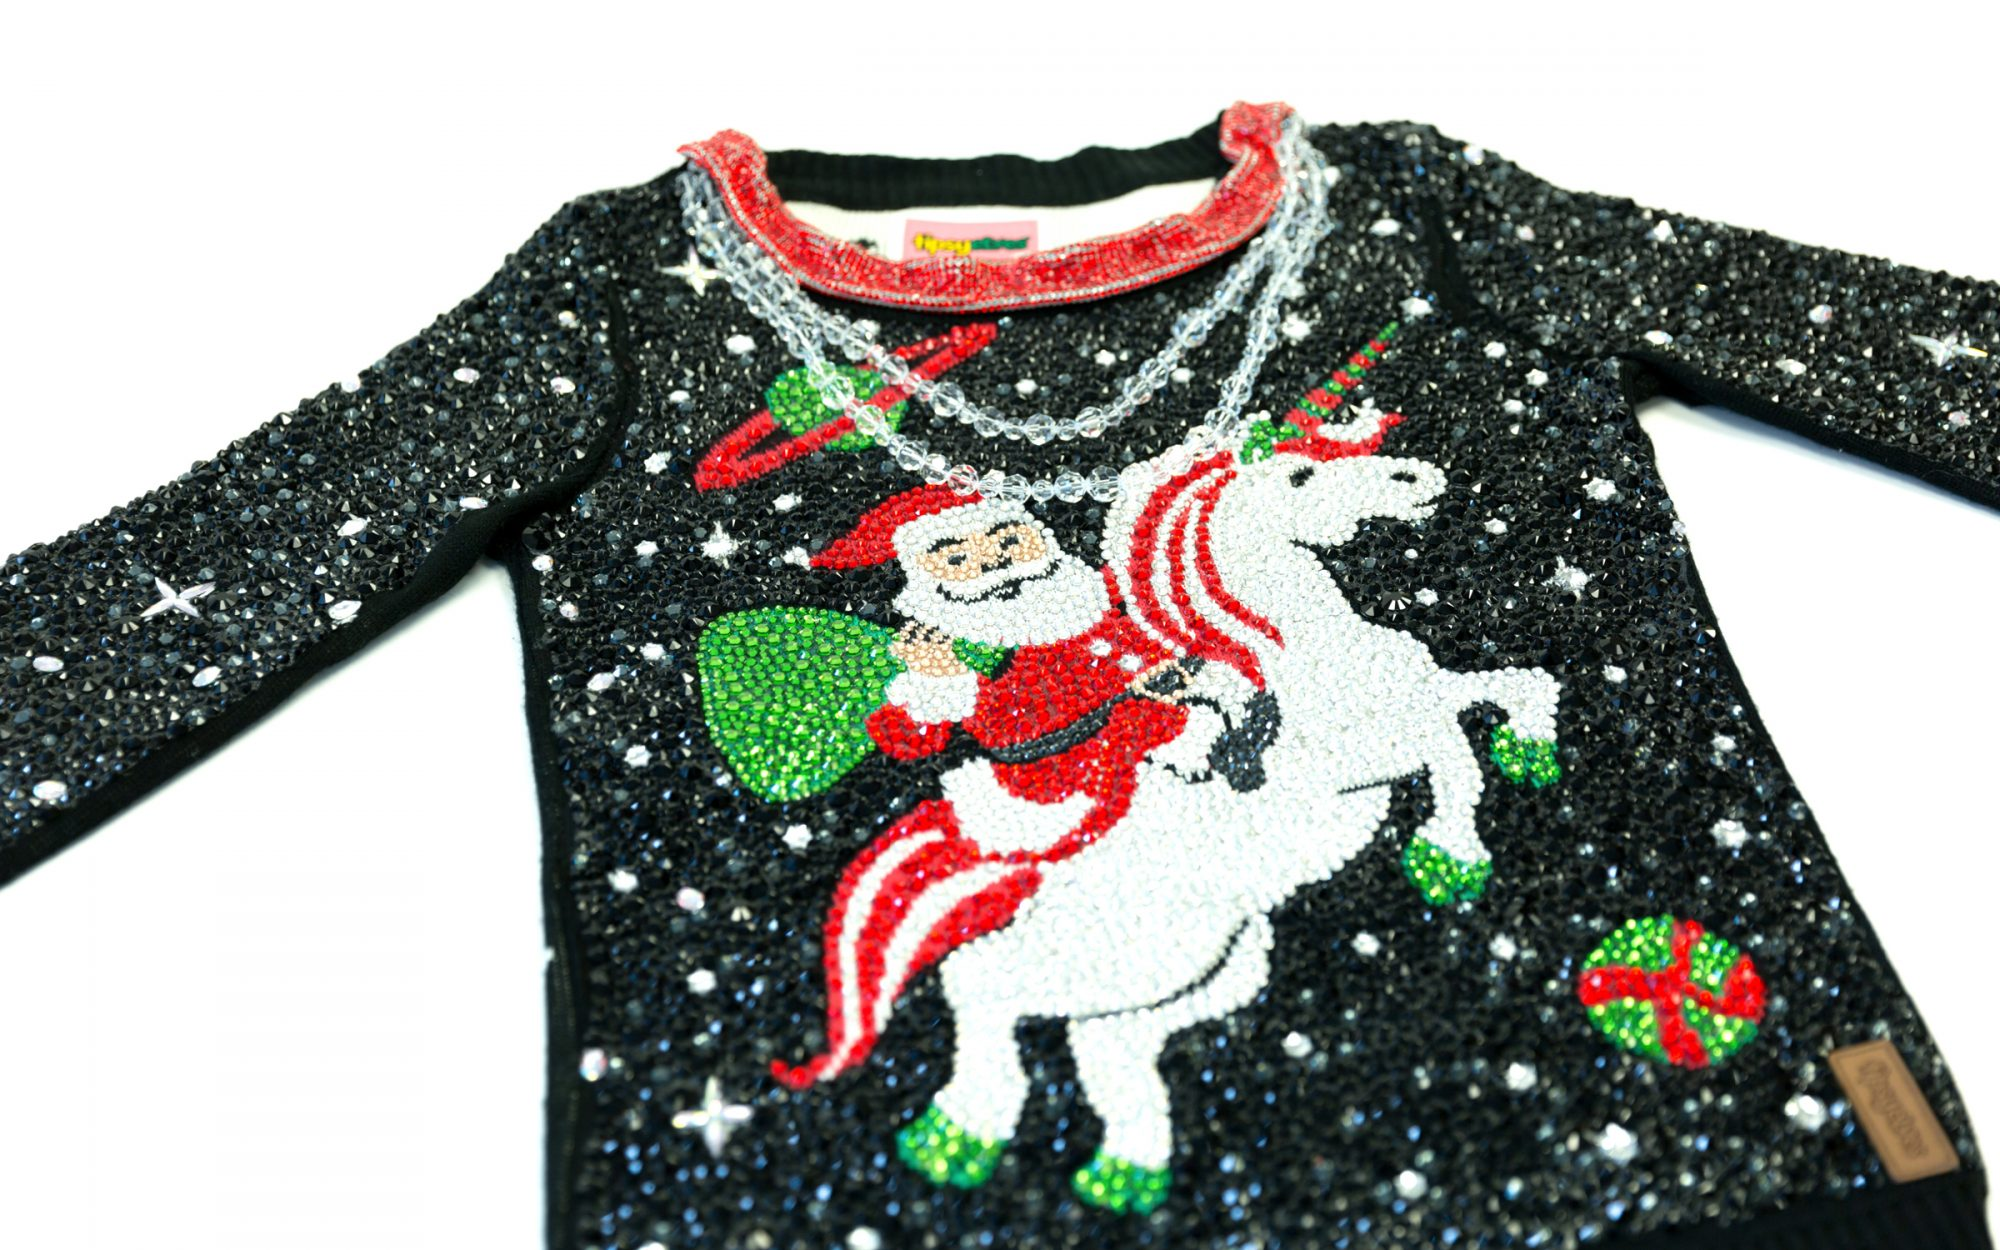 The Most Expensive Ugly Christmas Sweater Costs $30,000 and Has 24,274 Swarovski Crystals on It